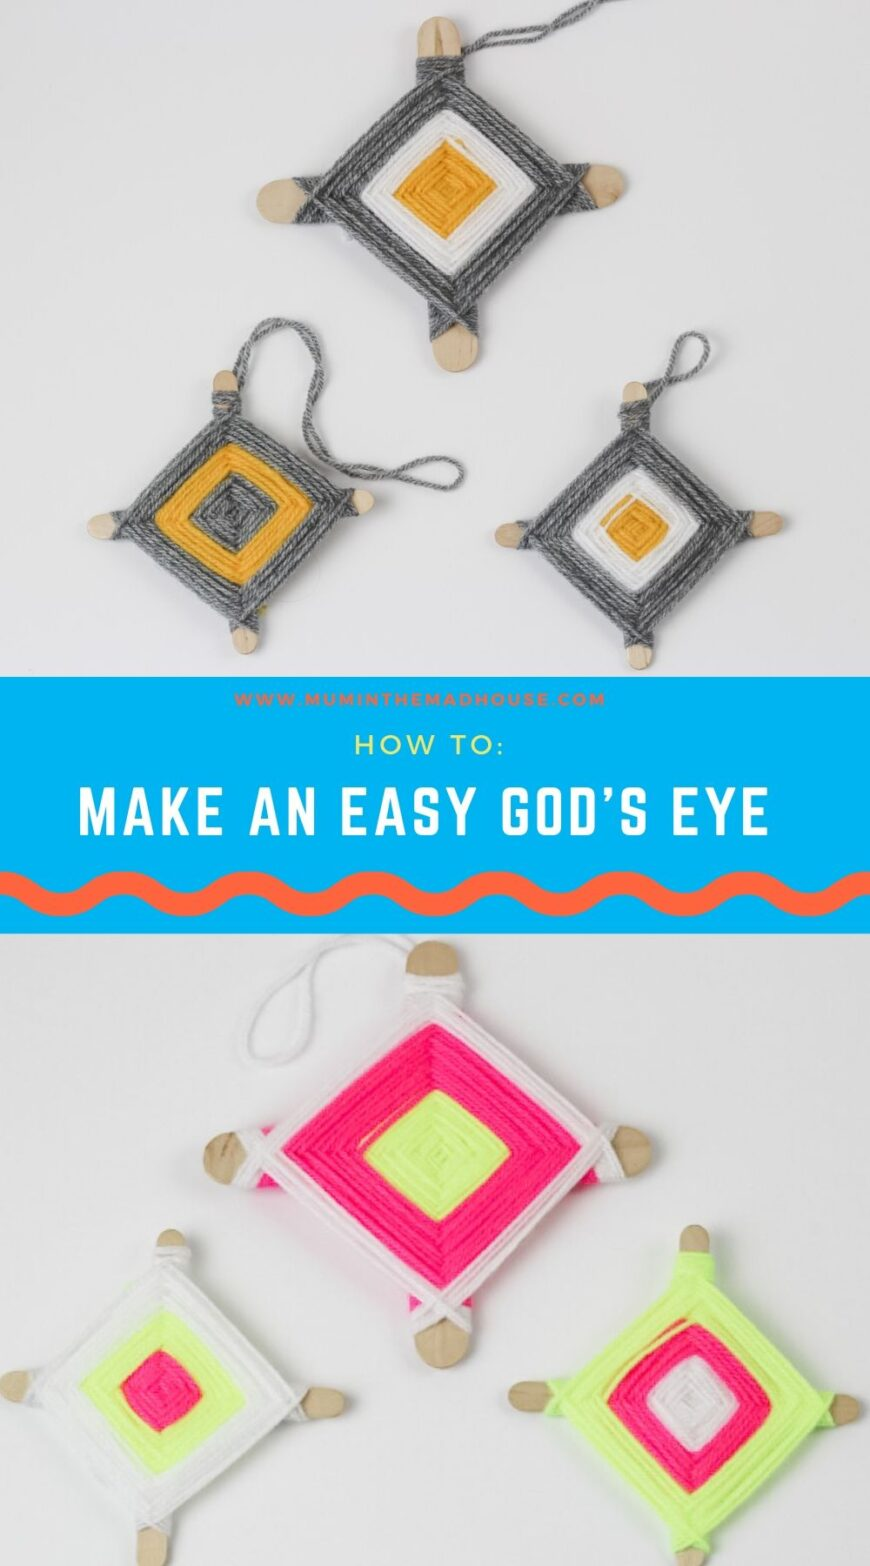 Kids can make this classic God's Eye craft with scraps of colourful yarn and 2 sticks. Great activity for strengthening fine motor skills